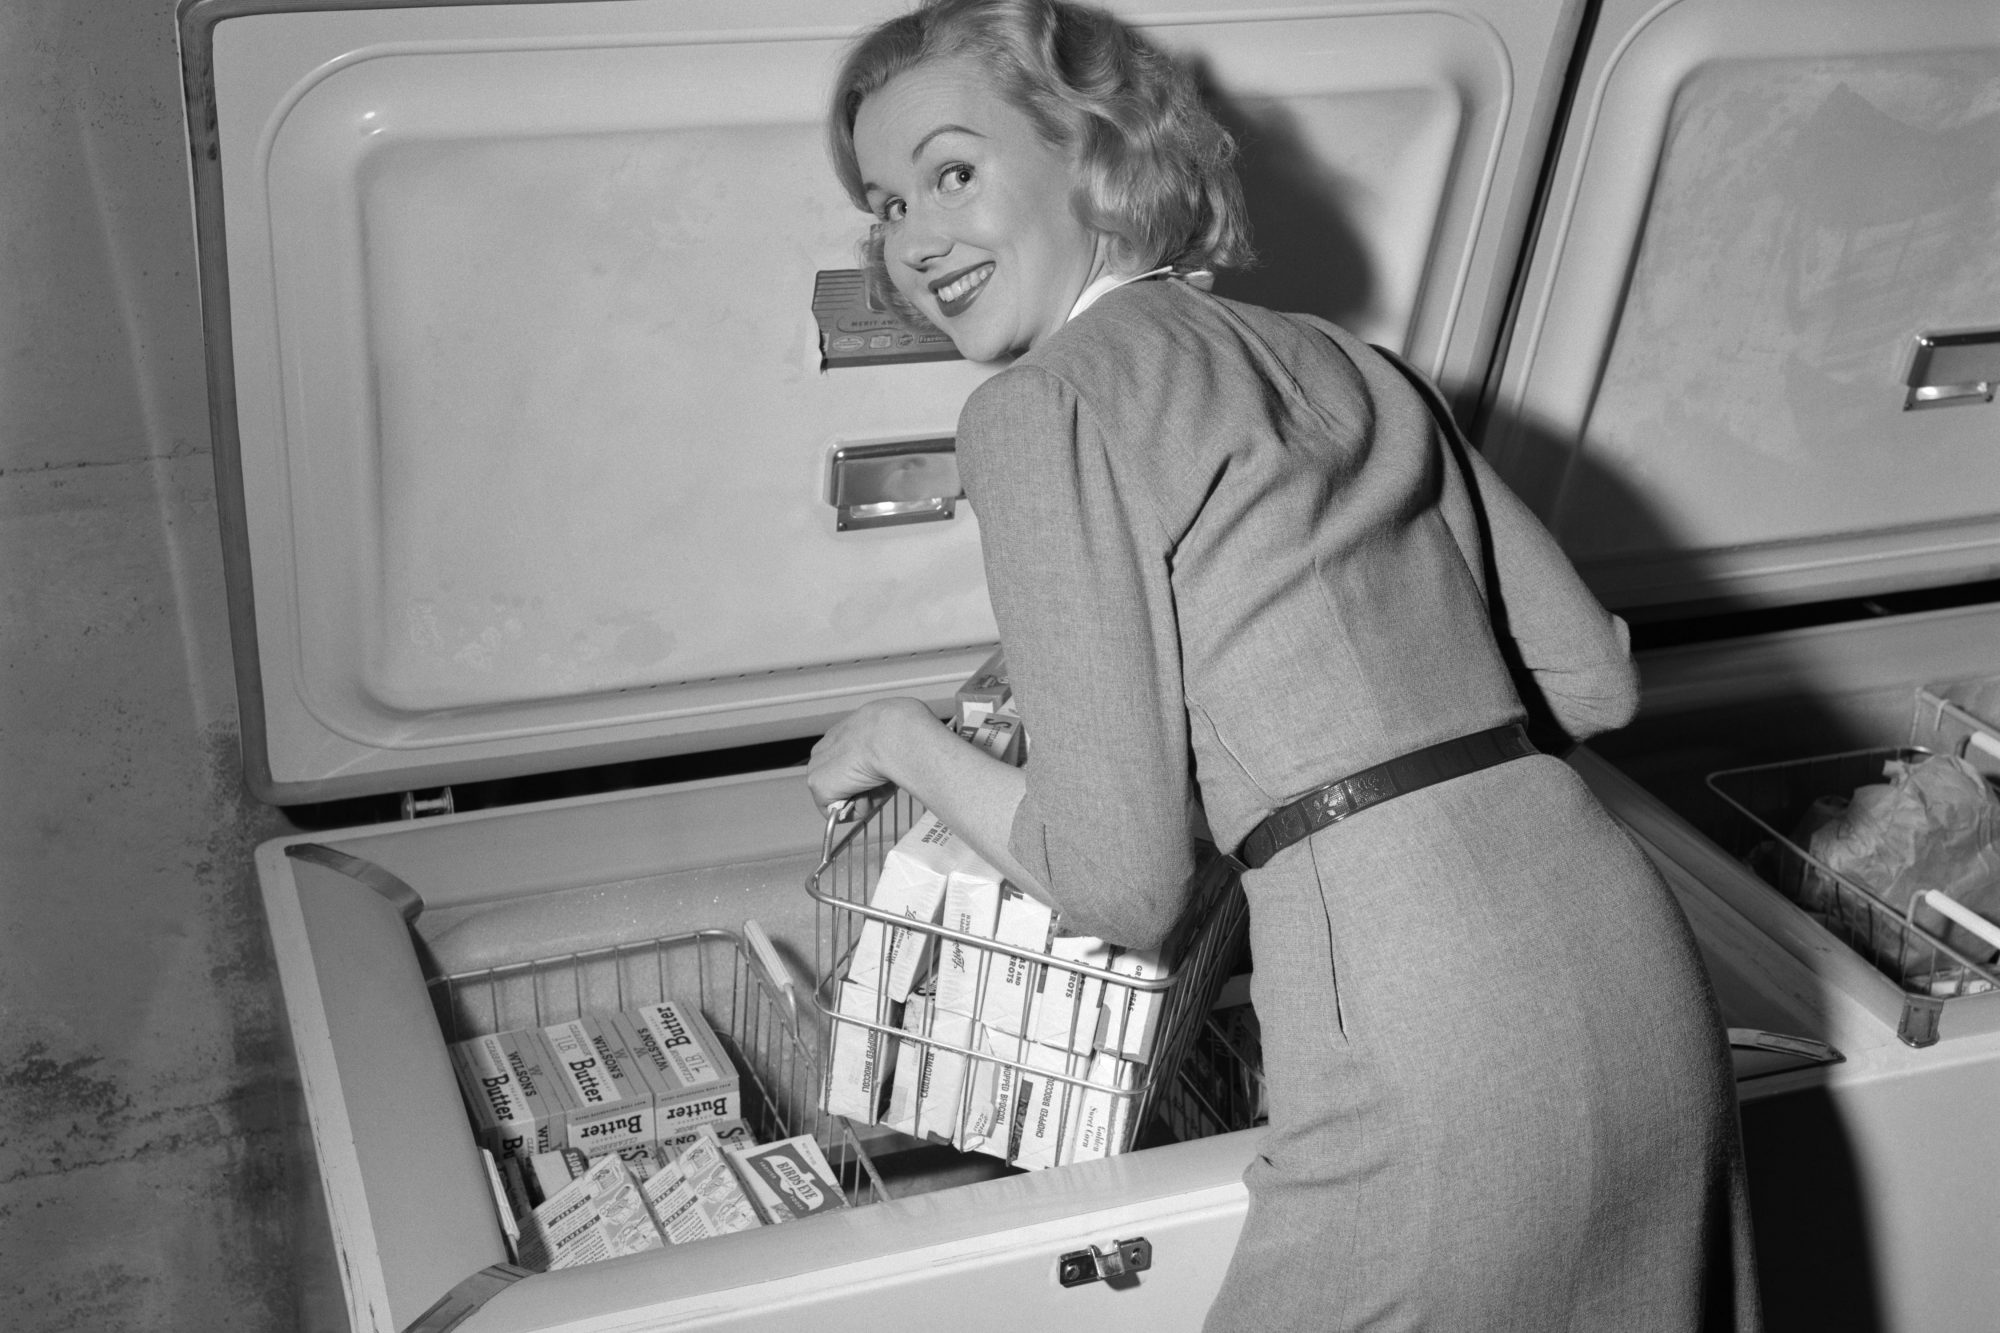 Woman Reaching in Freezer